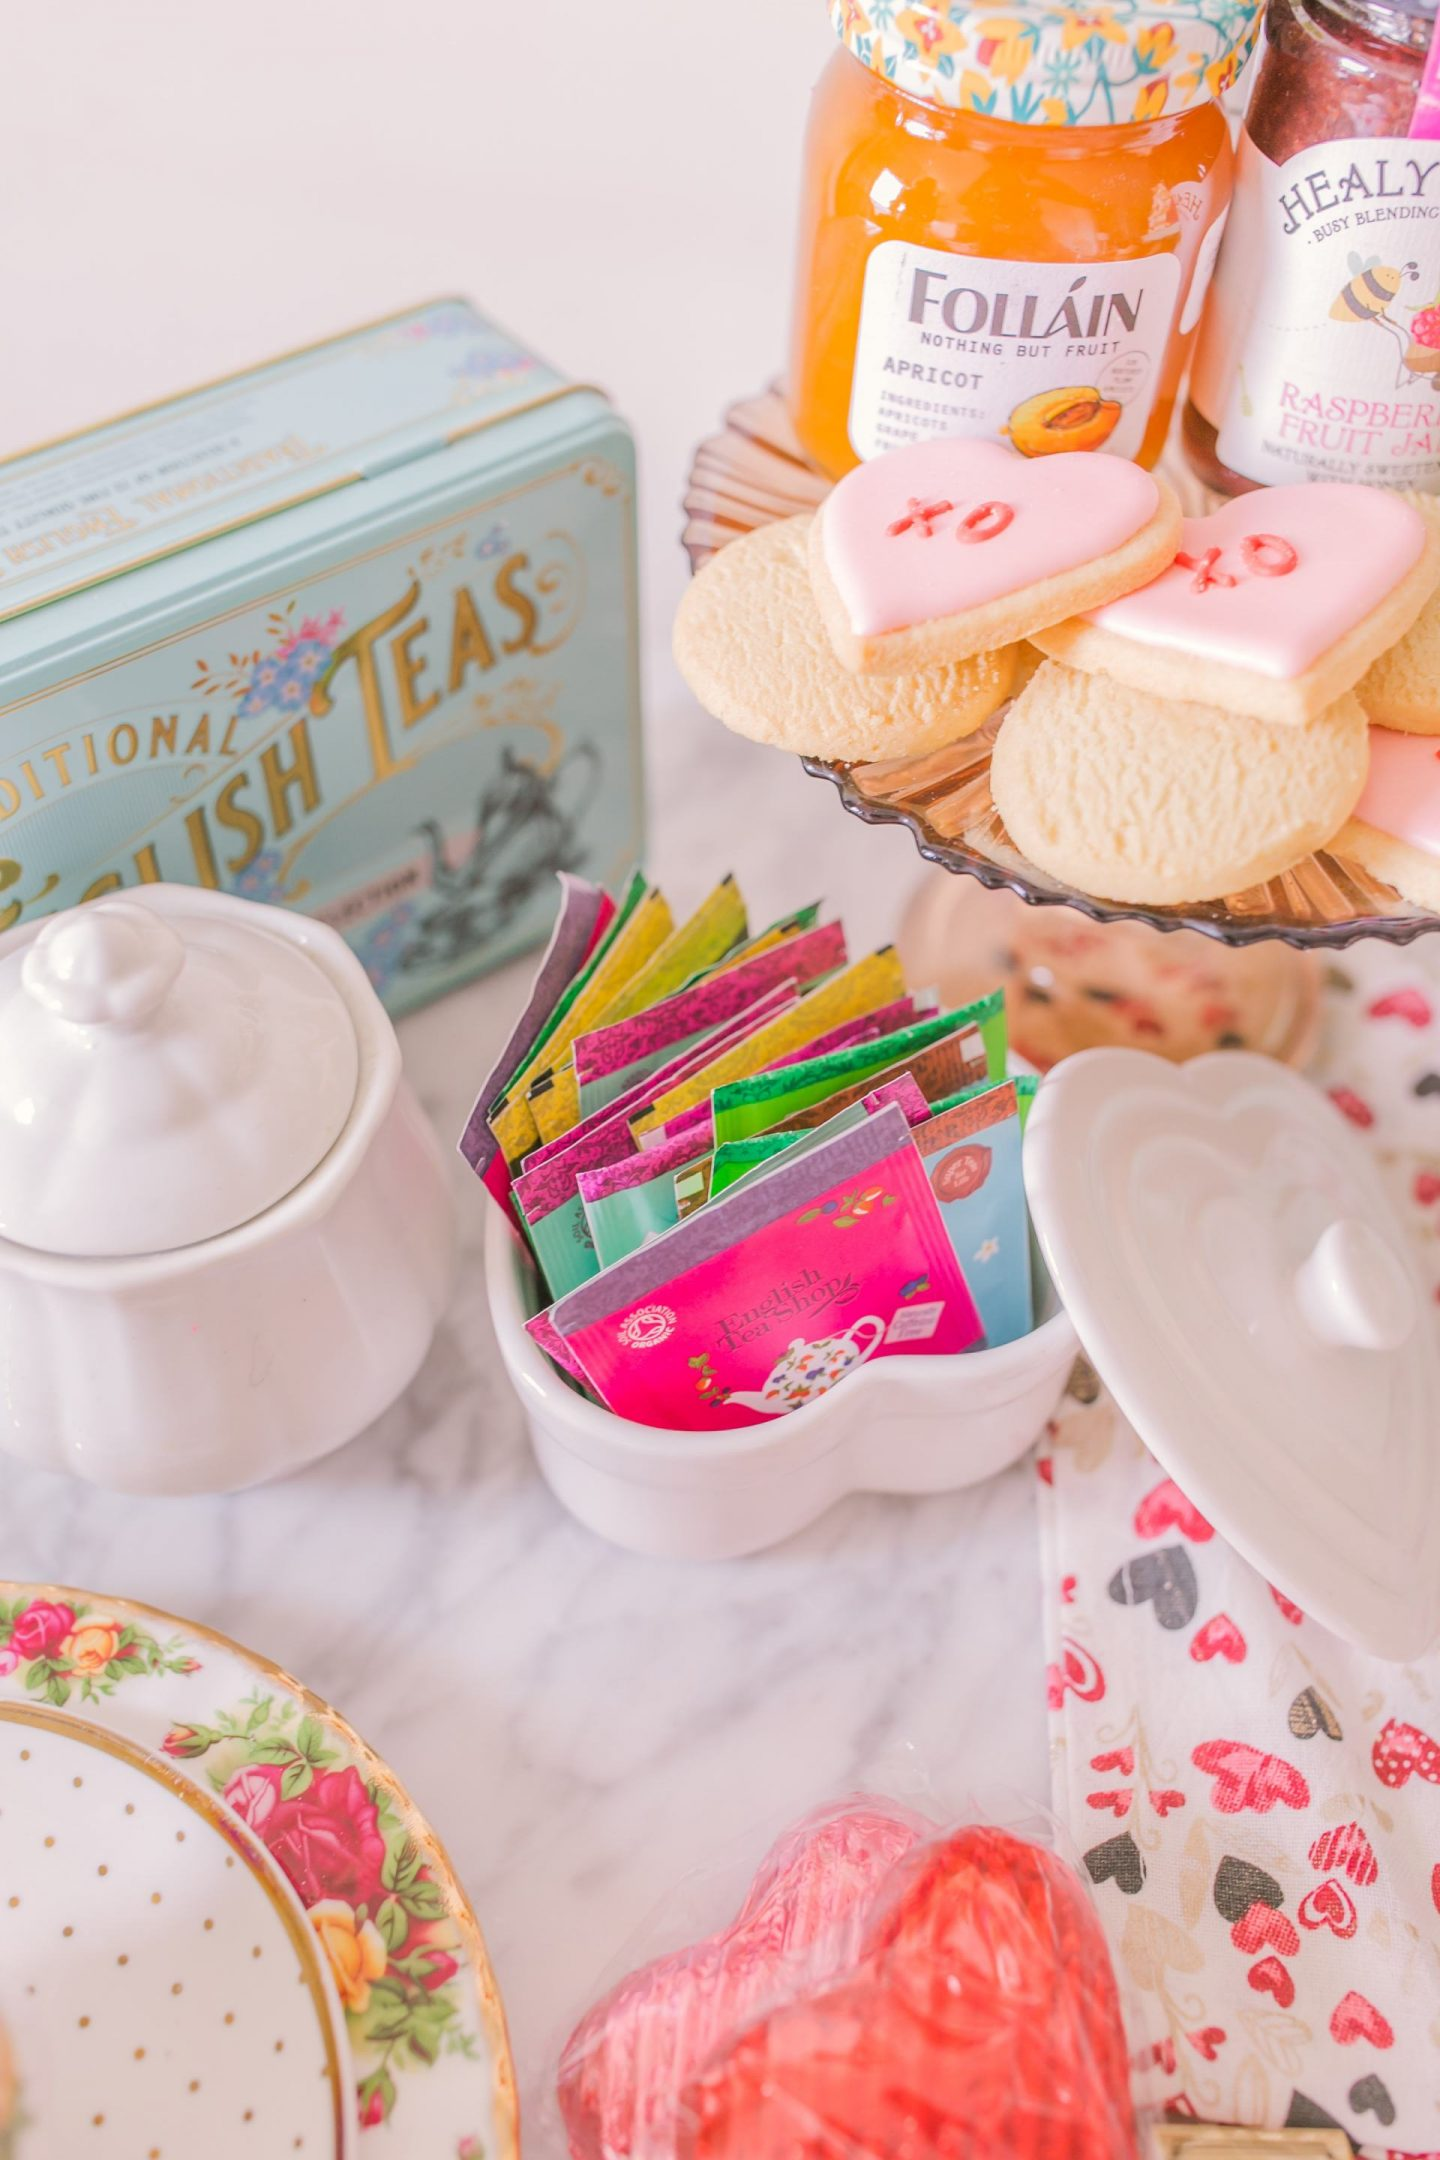 What teas to serve for an afternoon tea party